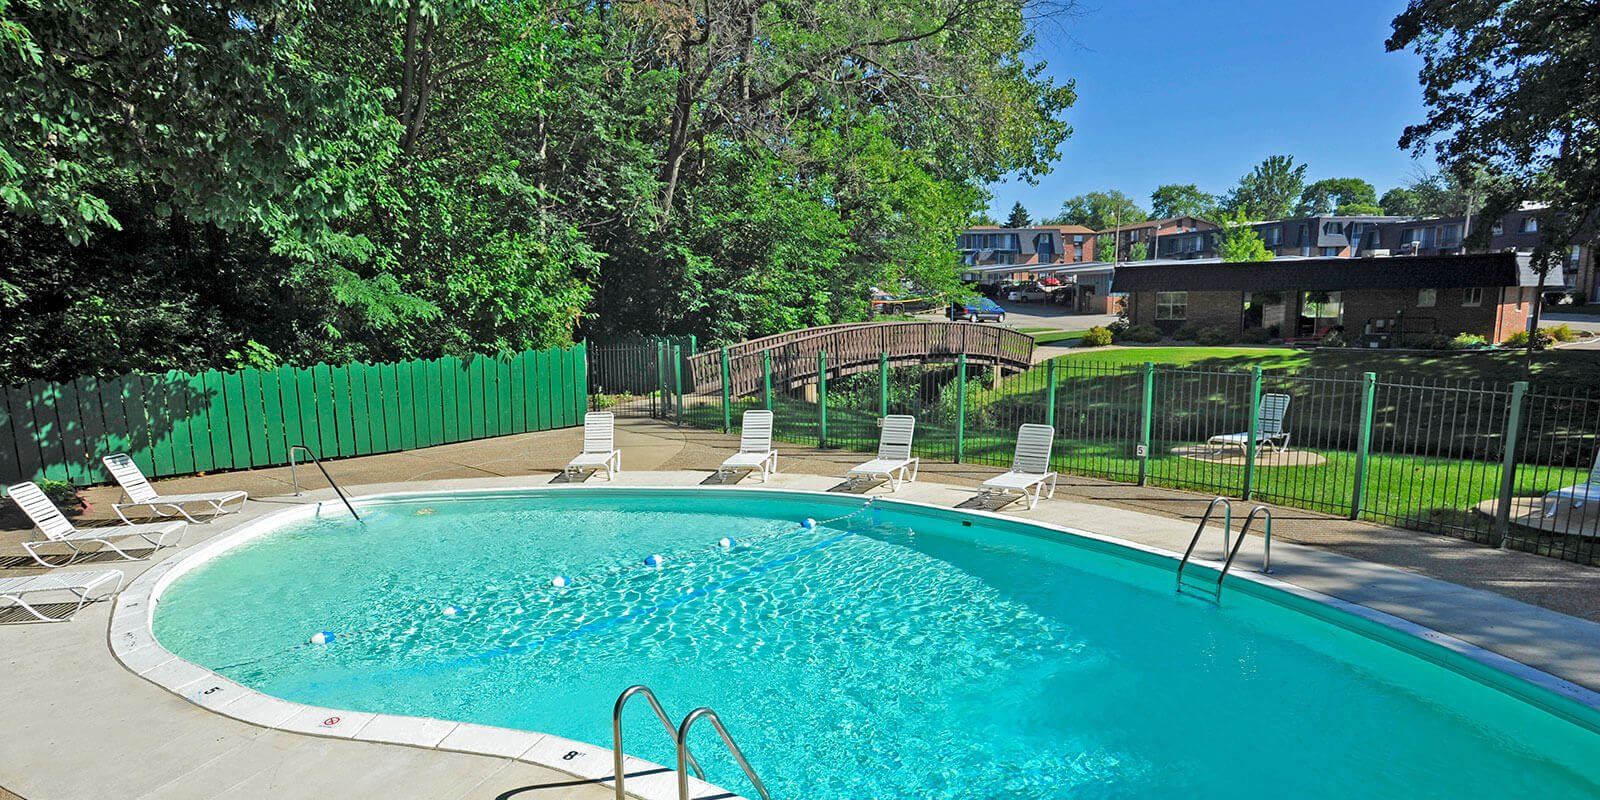 Outdoor swimming pool at Timberbrook Apartments, Peoria